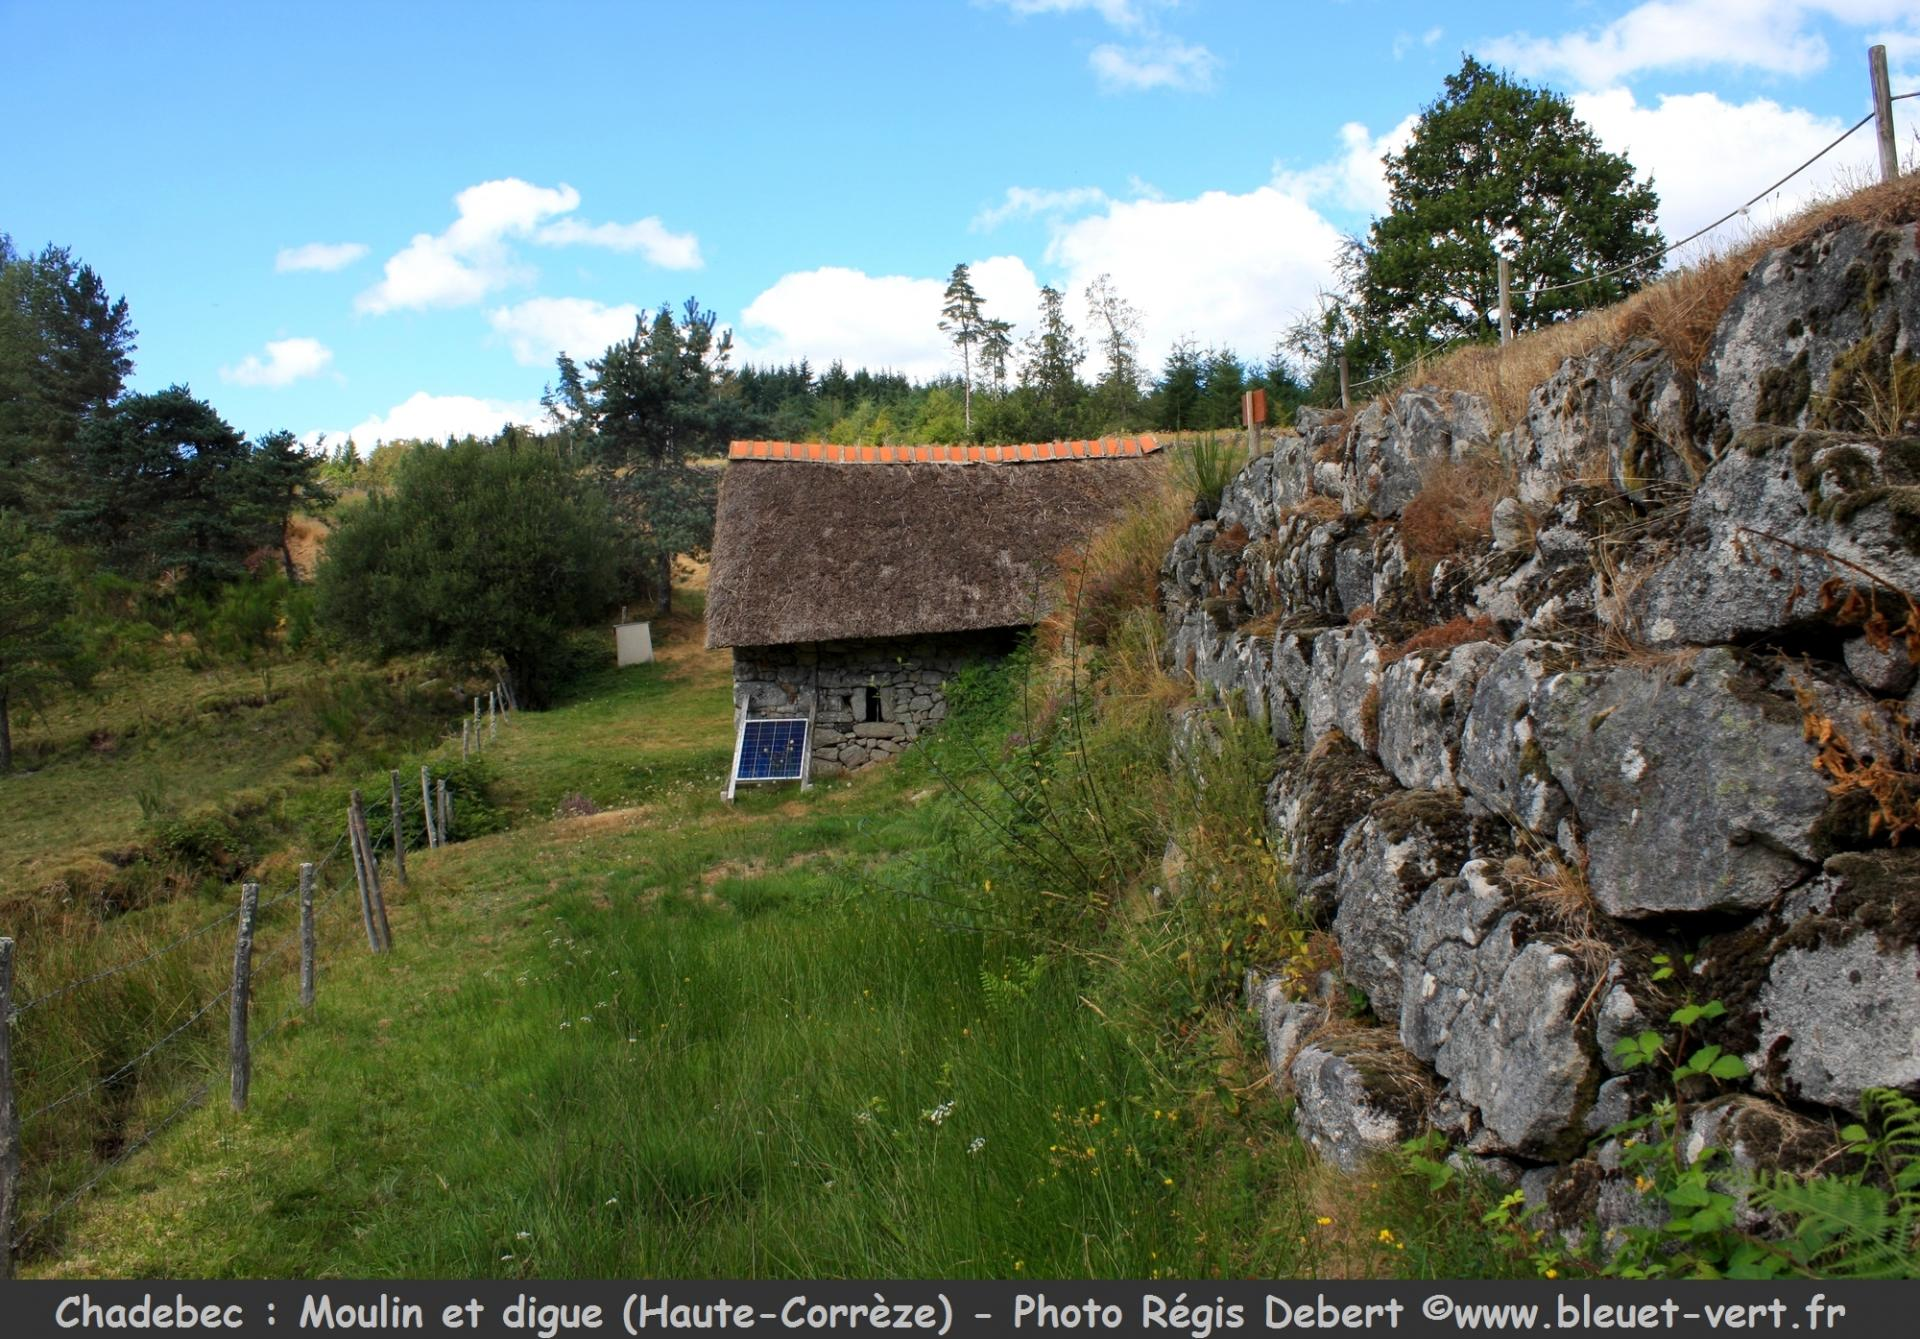 Chadebec moulin digue